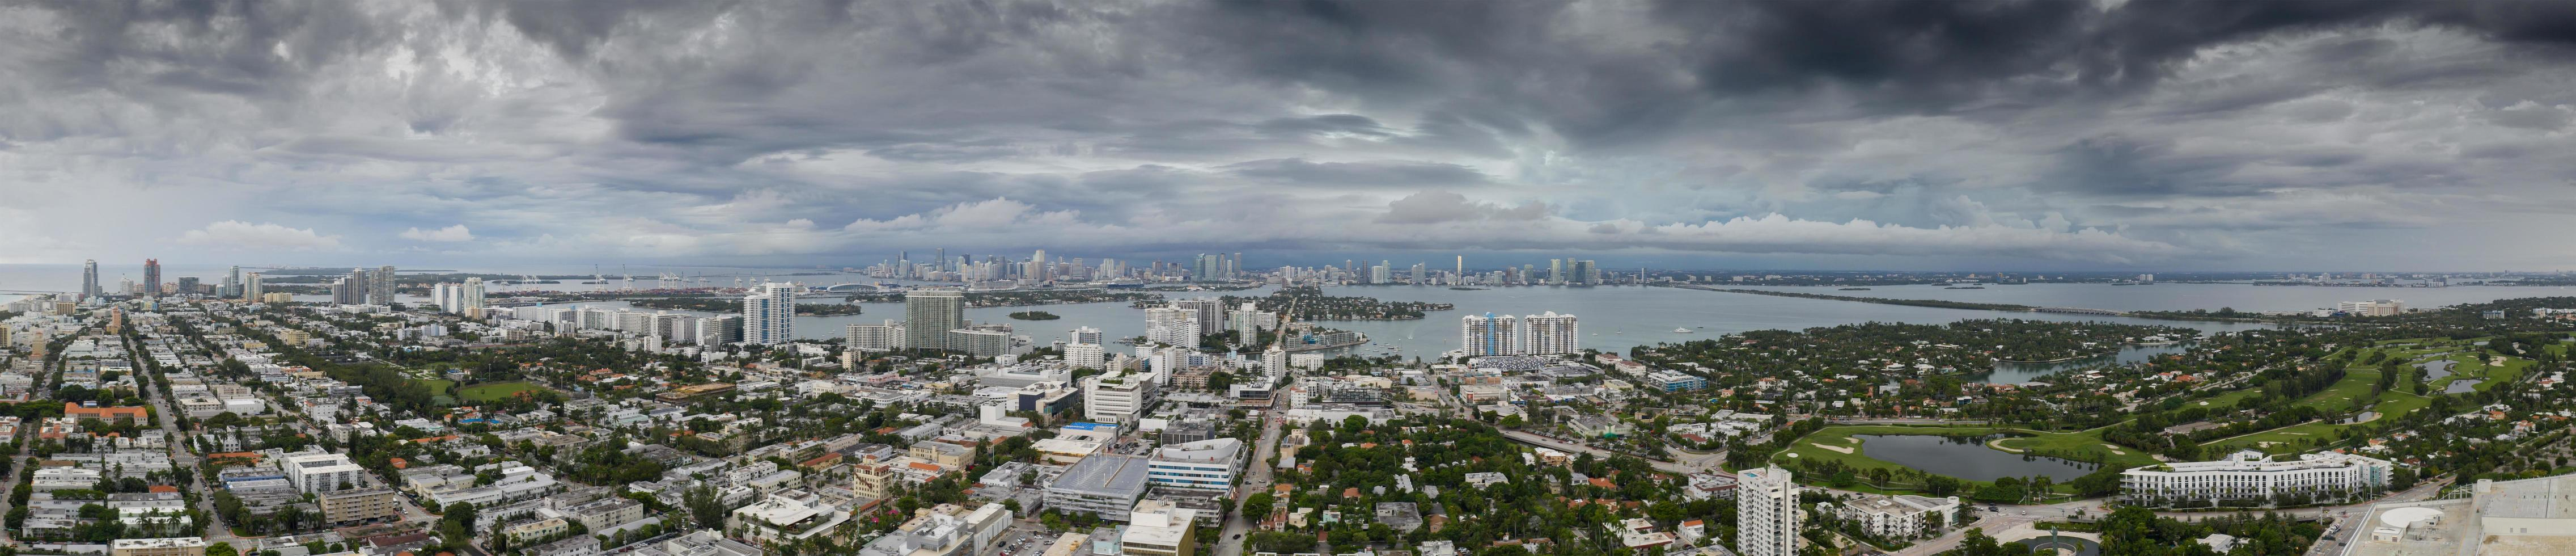 Aerial panorama of a storm in Miami photo